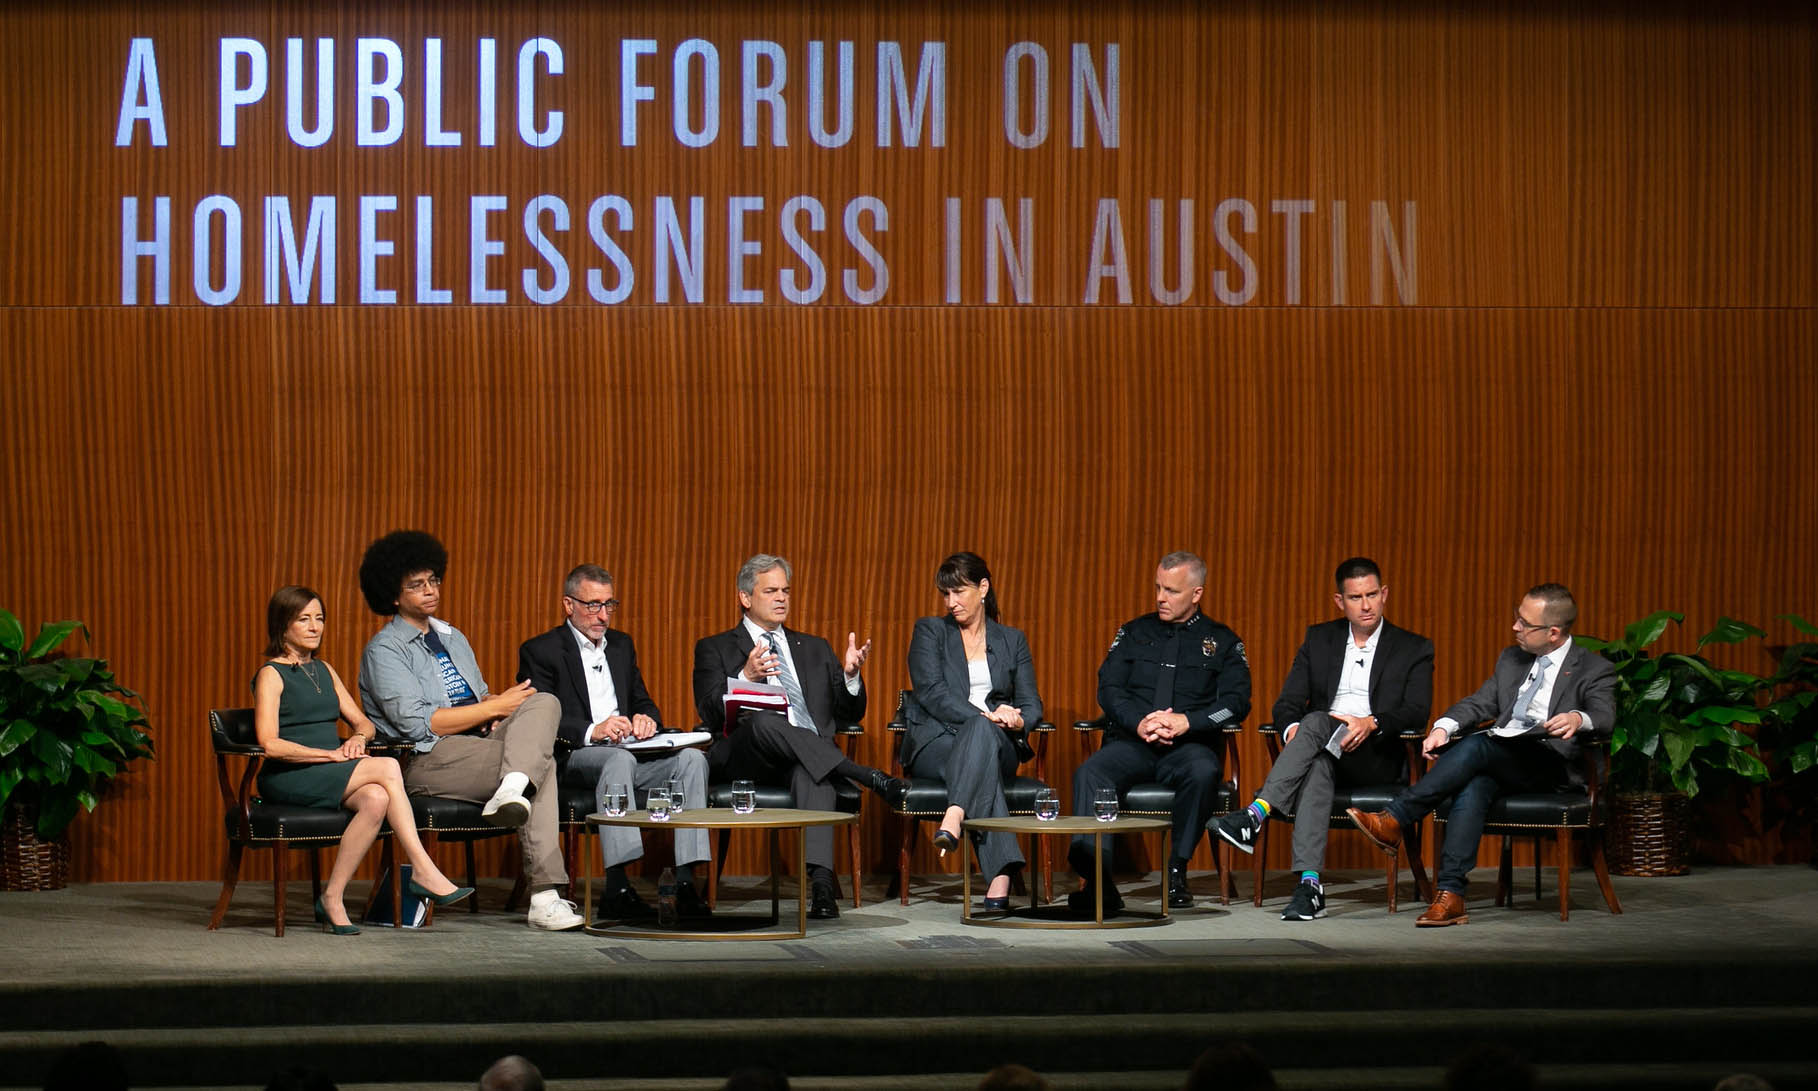 The panel at the Public Forum on Homelessness in Austin in the LBJ Auditorium on Aug. 29, 2019